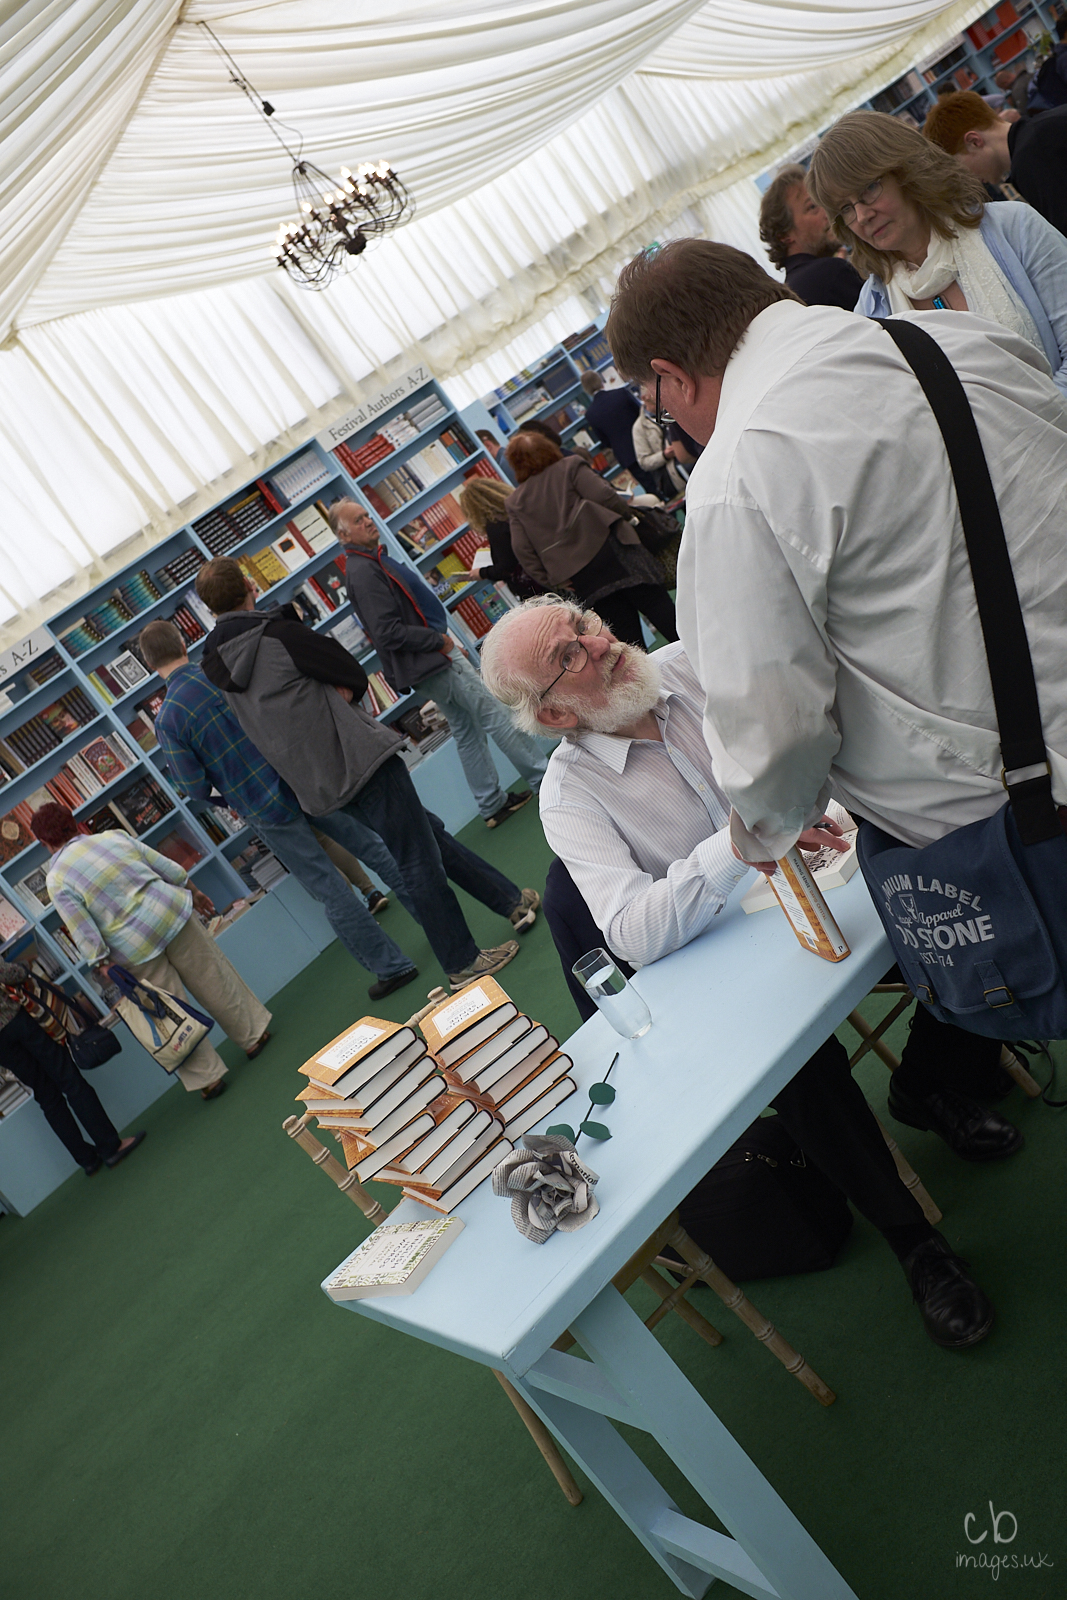 A white-haired author signs one of his books